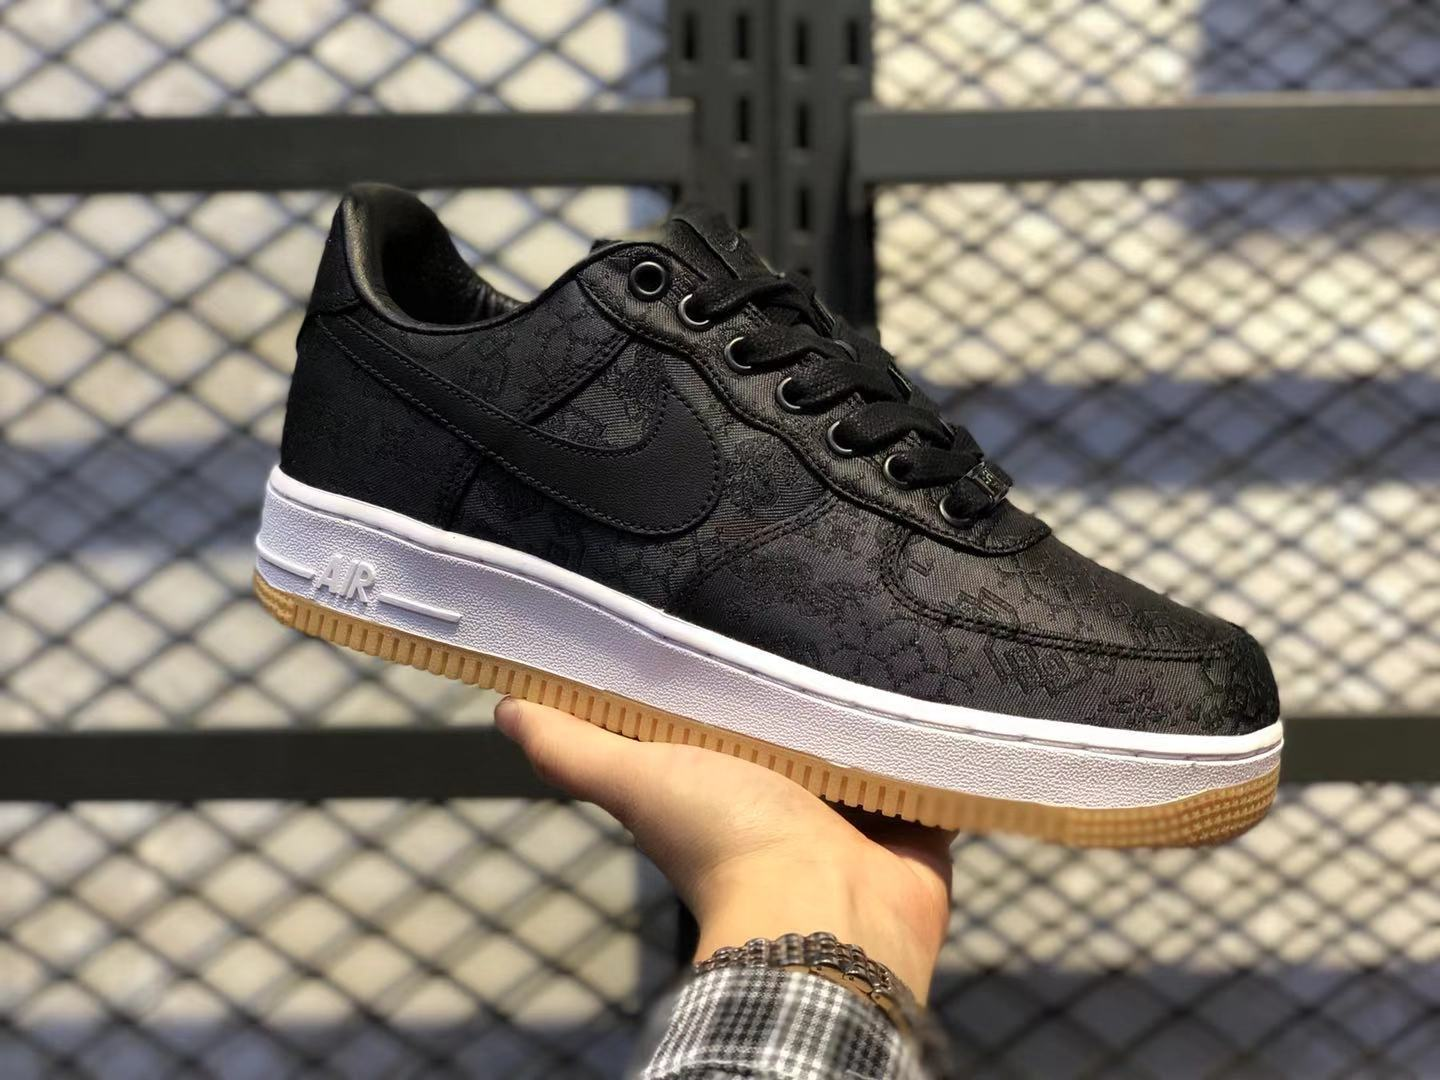 Fragment x CLOT x Nike Air Force 1 Black/University Red/White To Buy